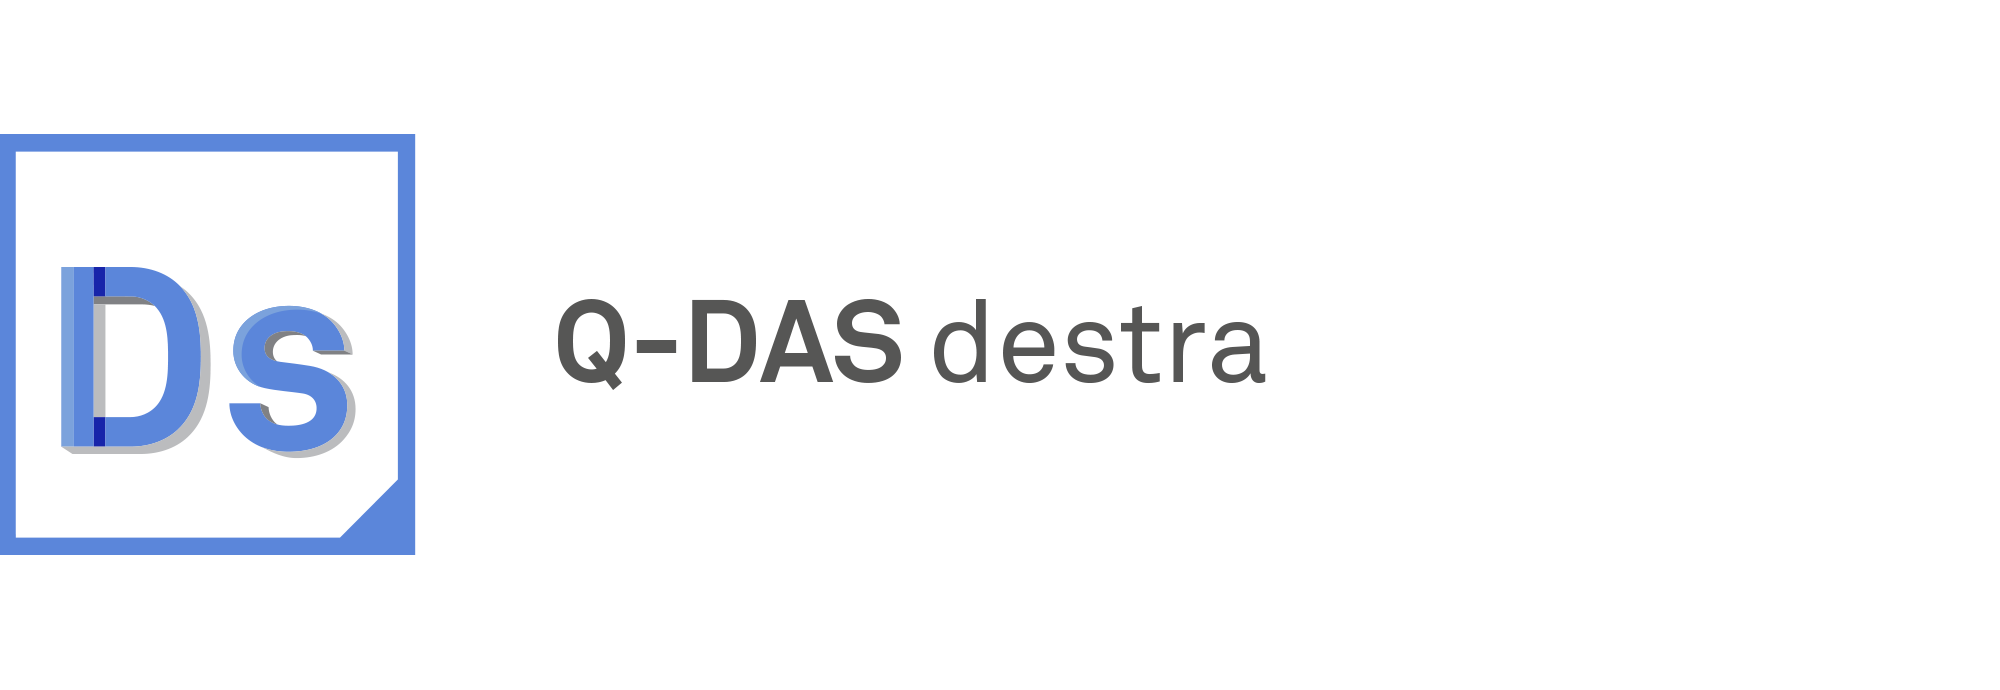 Q-DAS destra - Software zur Qualitätssicherung in der industriellen Produktion